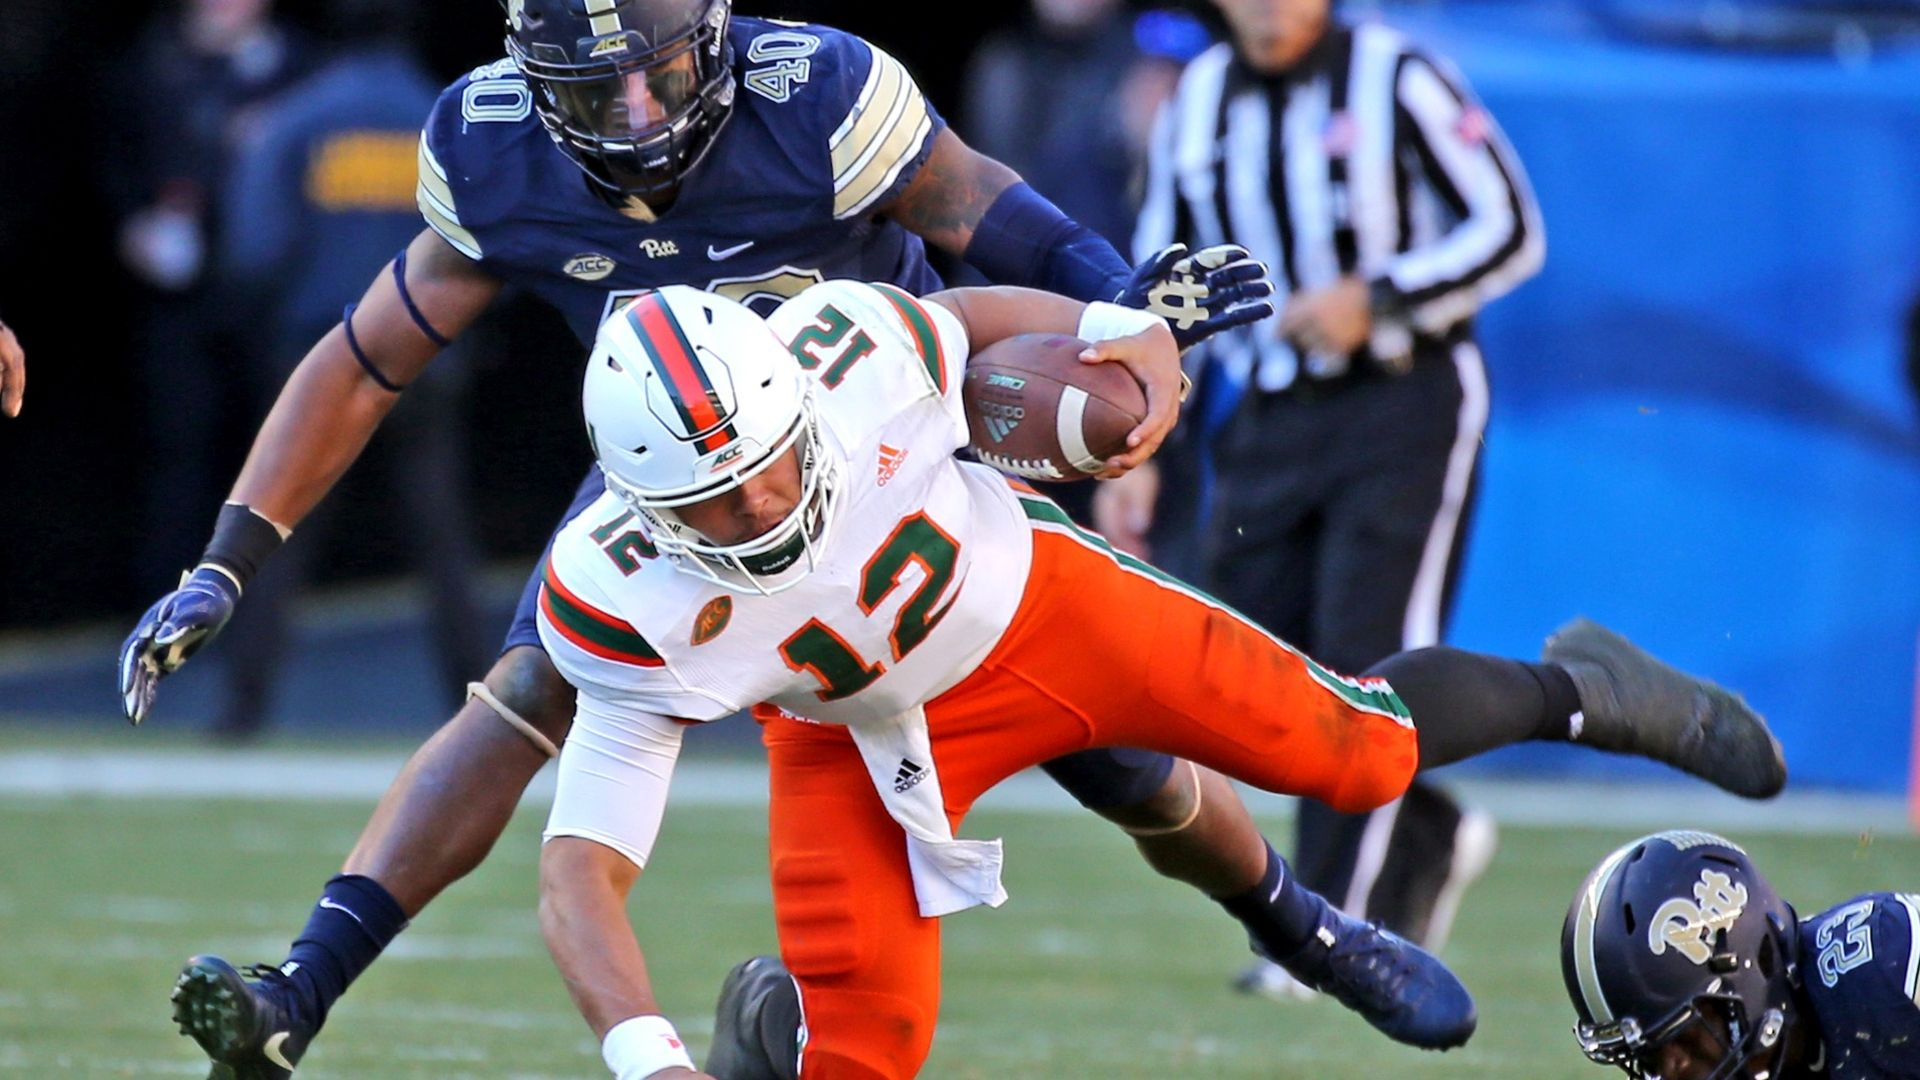 Pitt's upset of No.2 Miami is history repeated